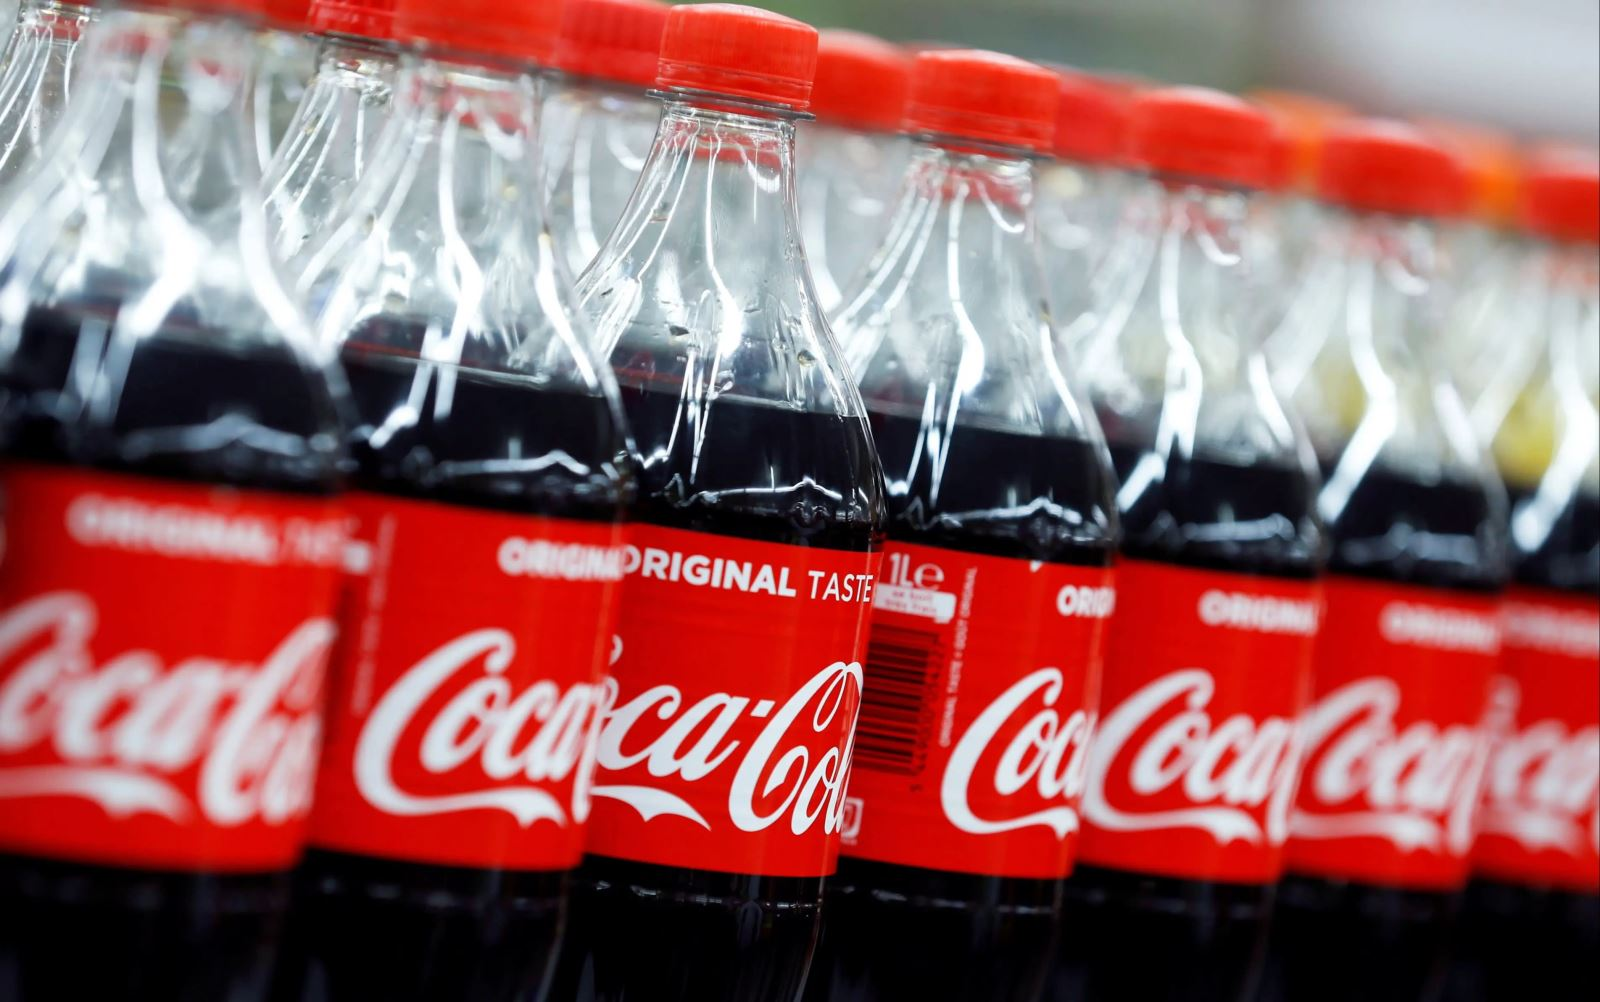 Coca-Cola is among the most popular drinks in Vietnam. Photo: Nikkei